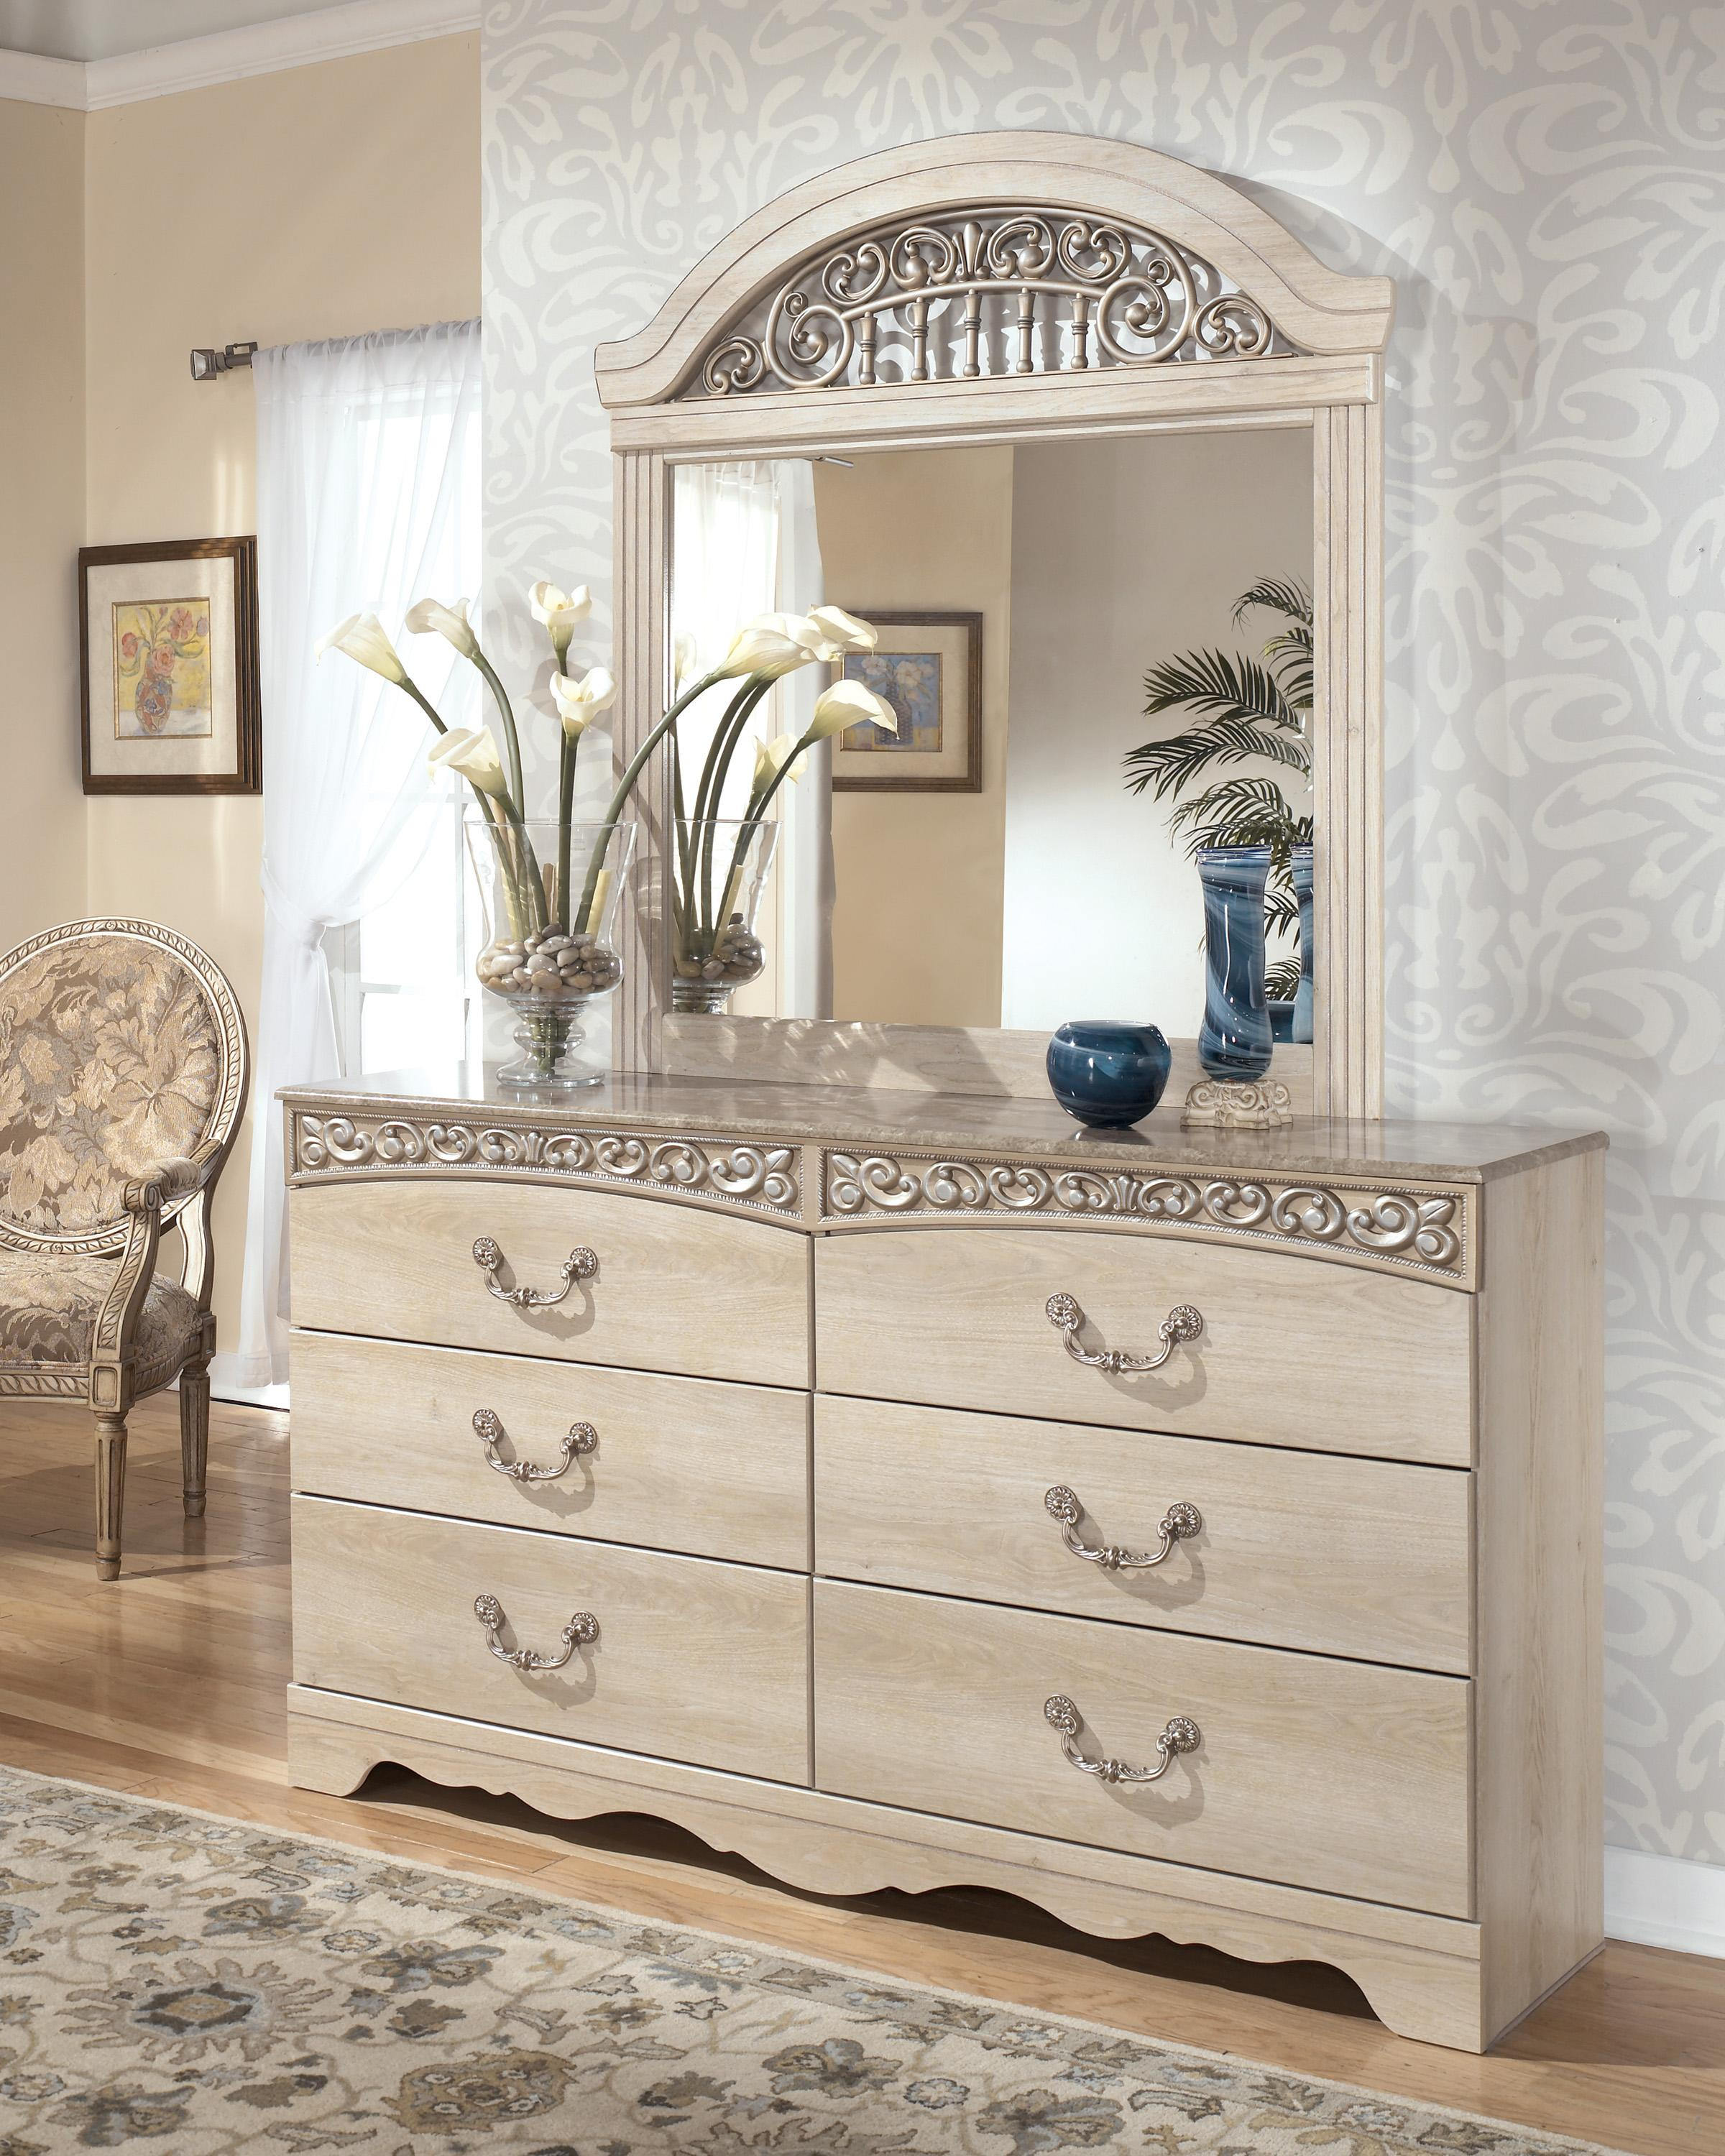 dressers furniture birstrom dresser shop bedroom ashley collection